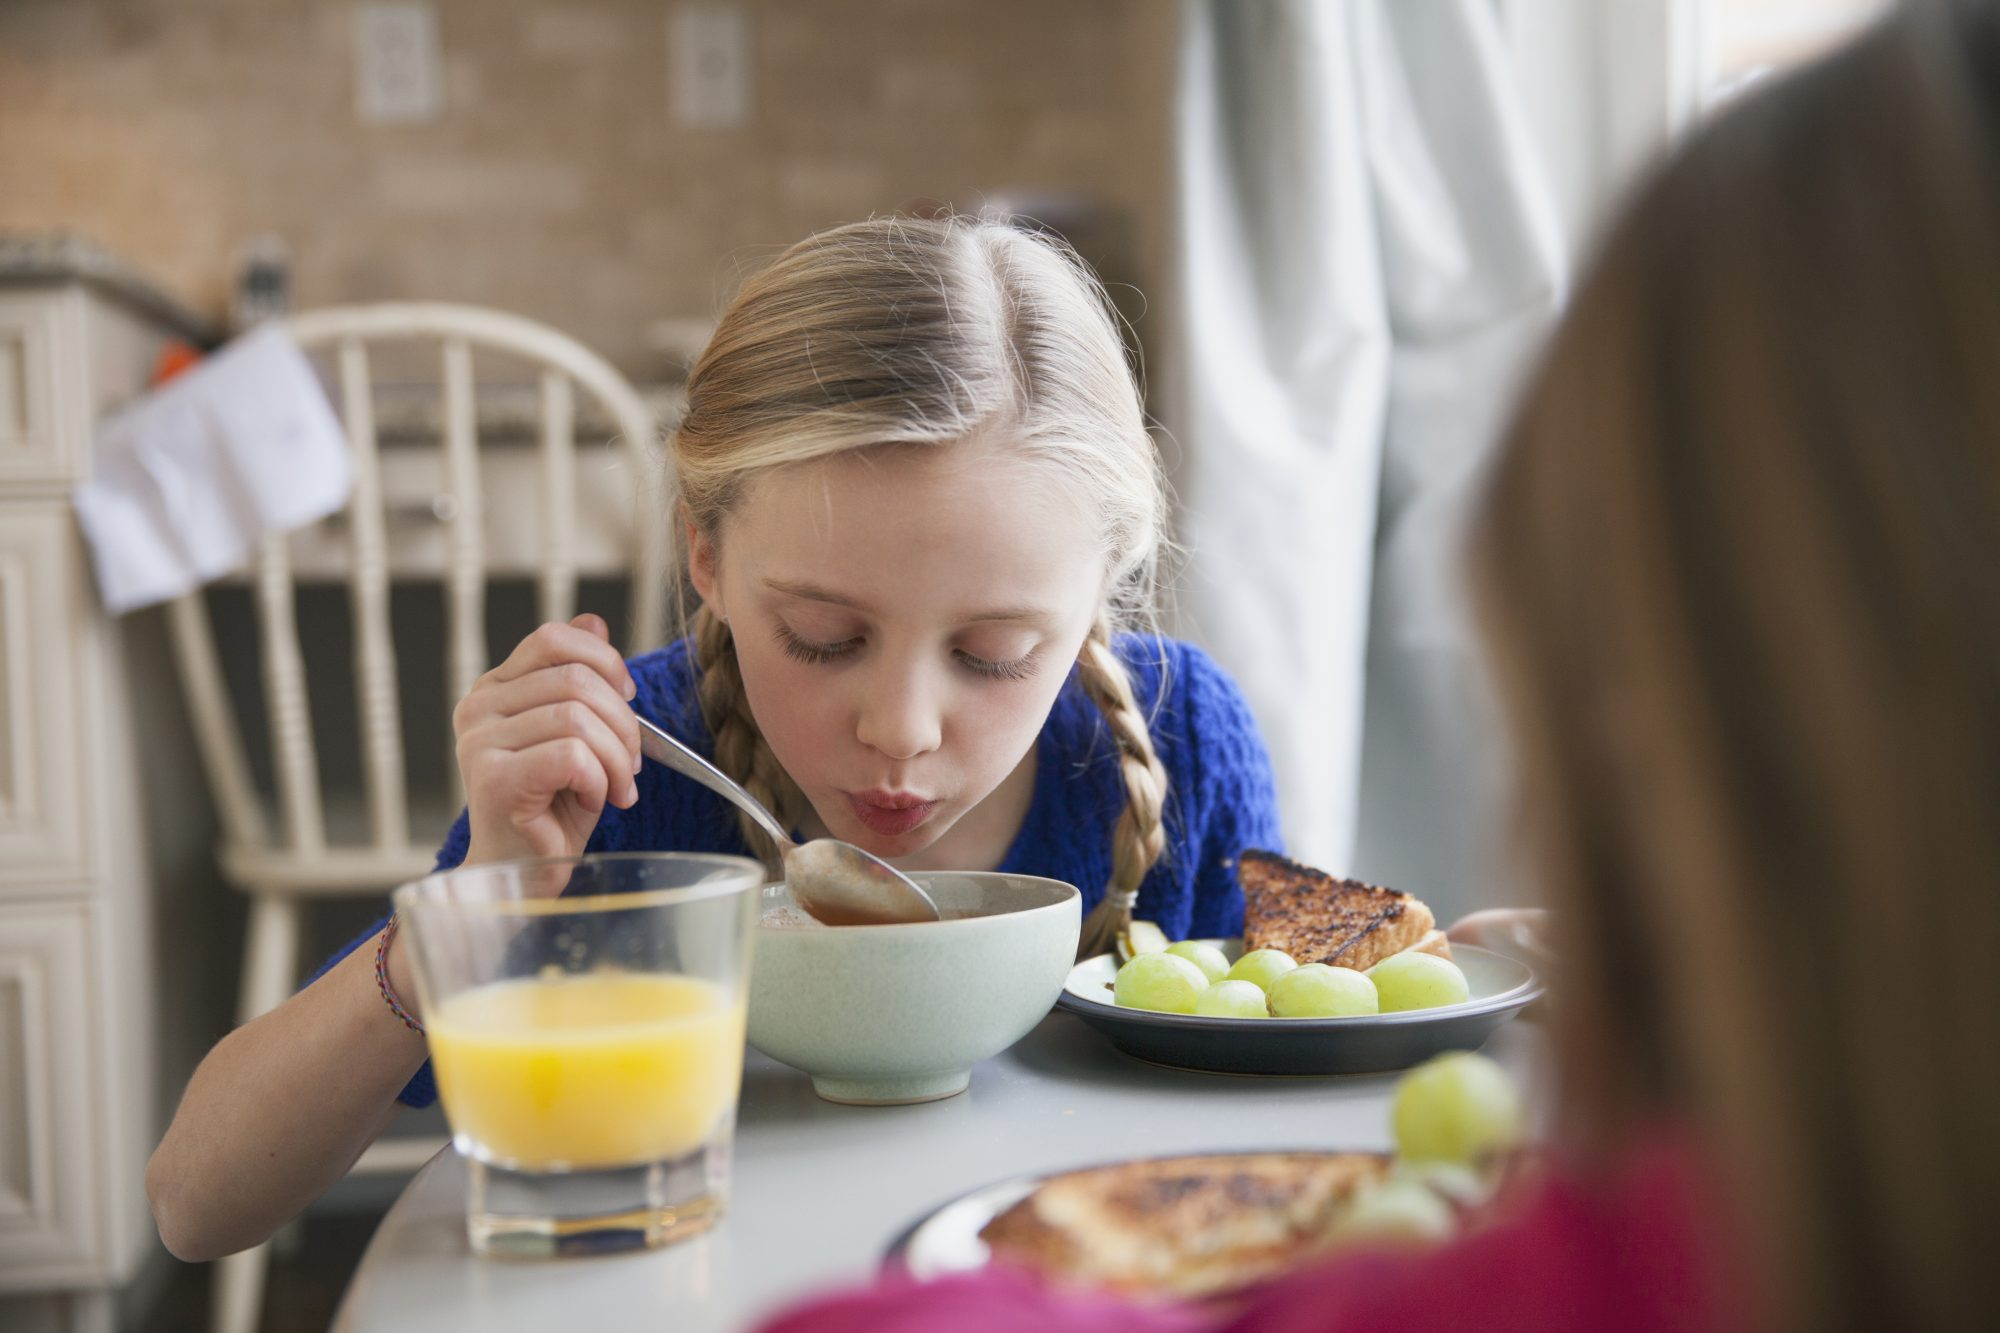 Instant Soup Sends a Shocking Number of Kids to the ER Every Year